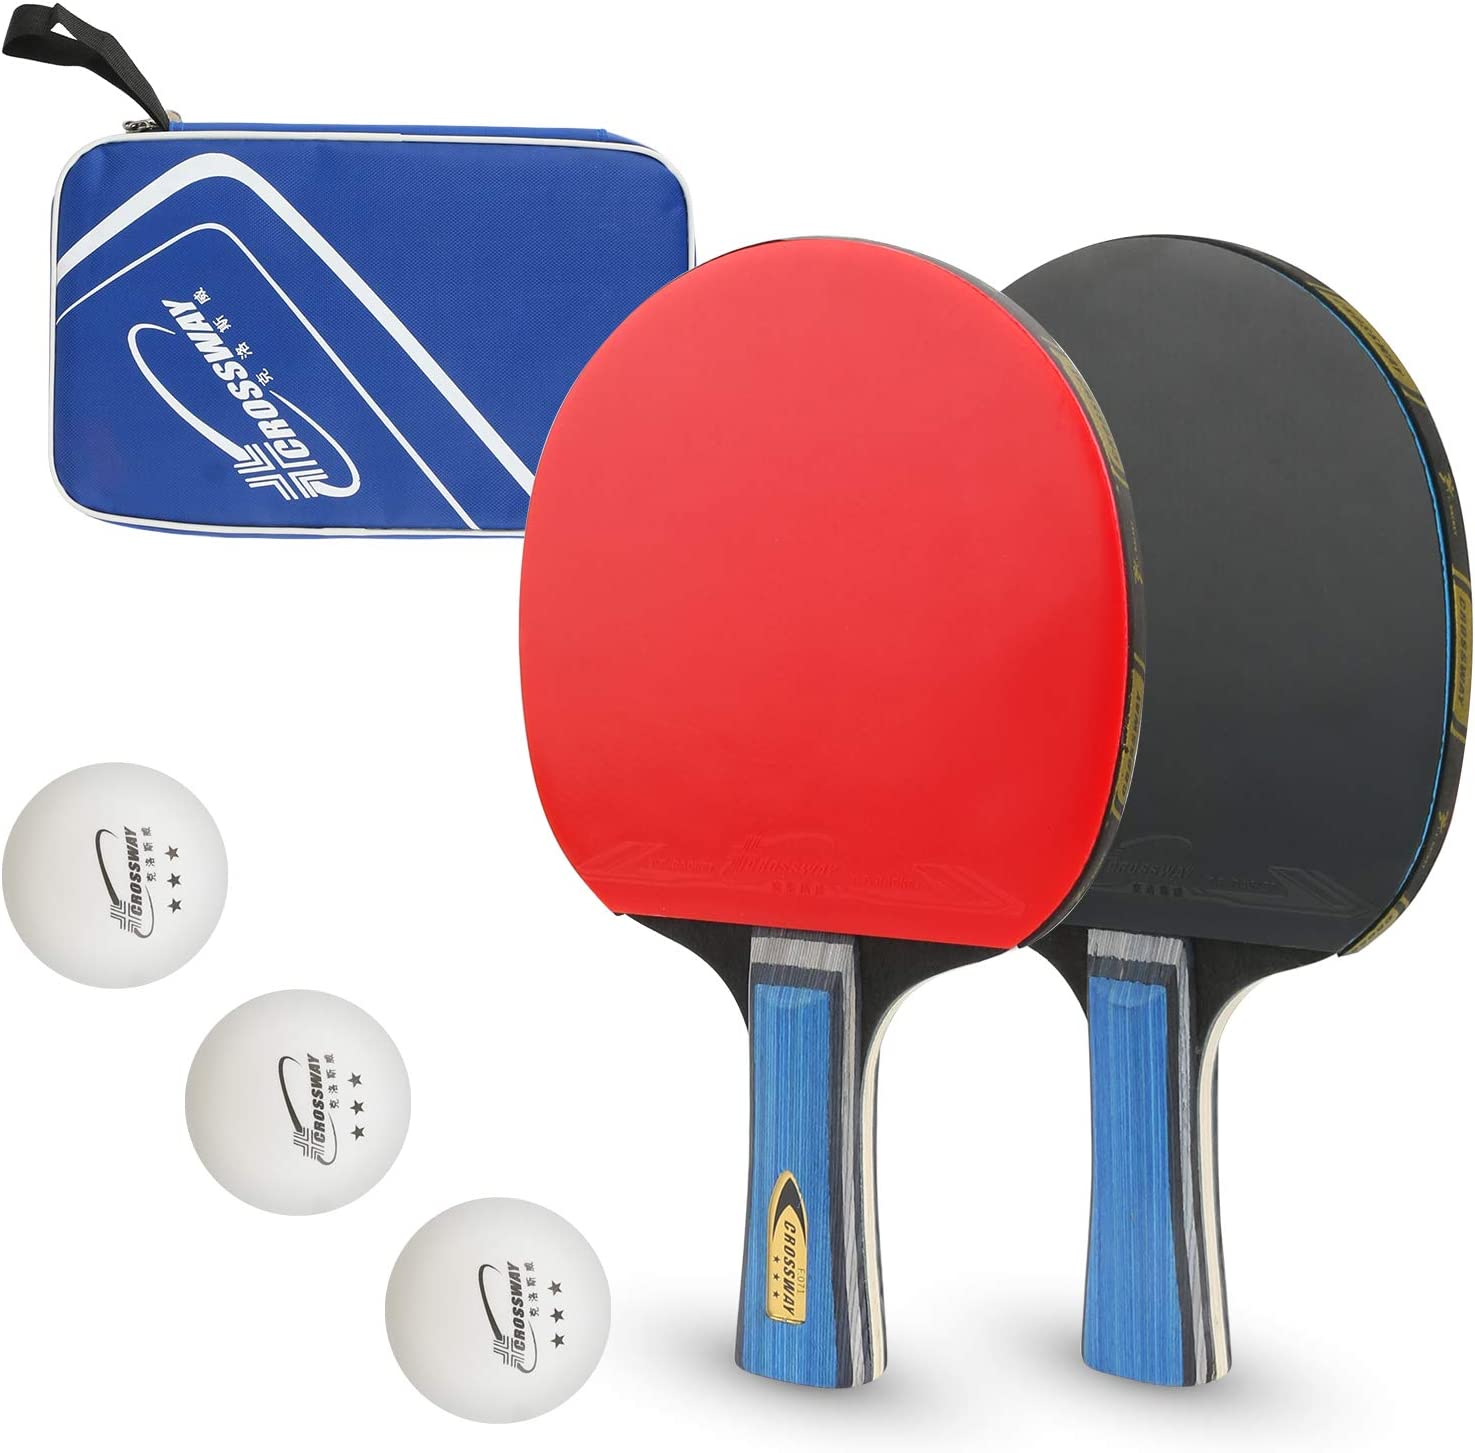 Mail order cheap Ideashop Ping Pong Paddle Set Tennis Table Portable Balls Super popular specialty store with